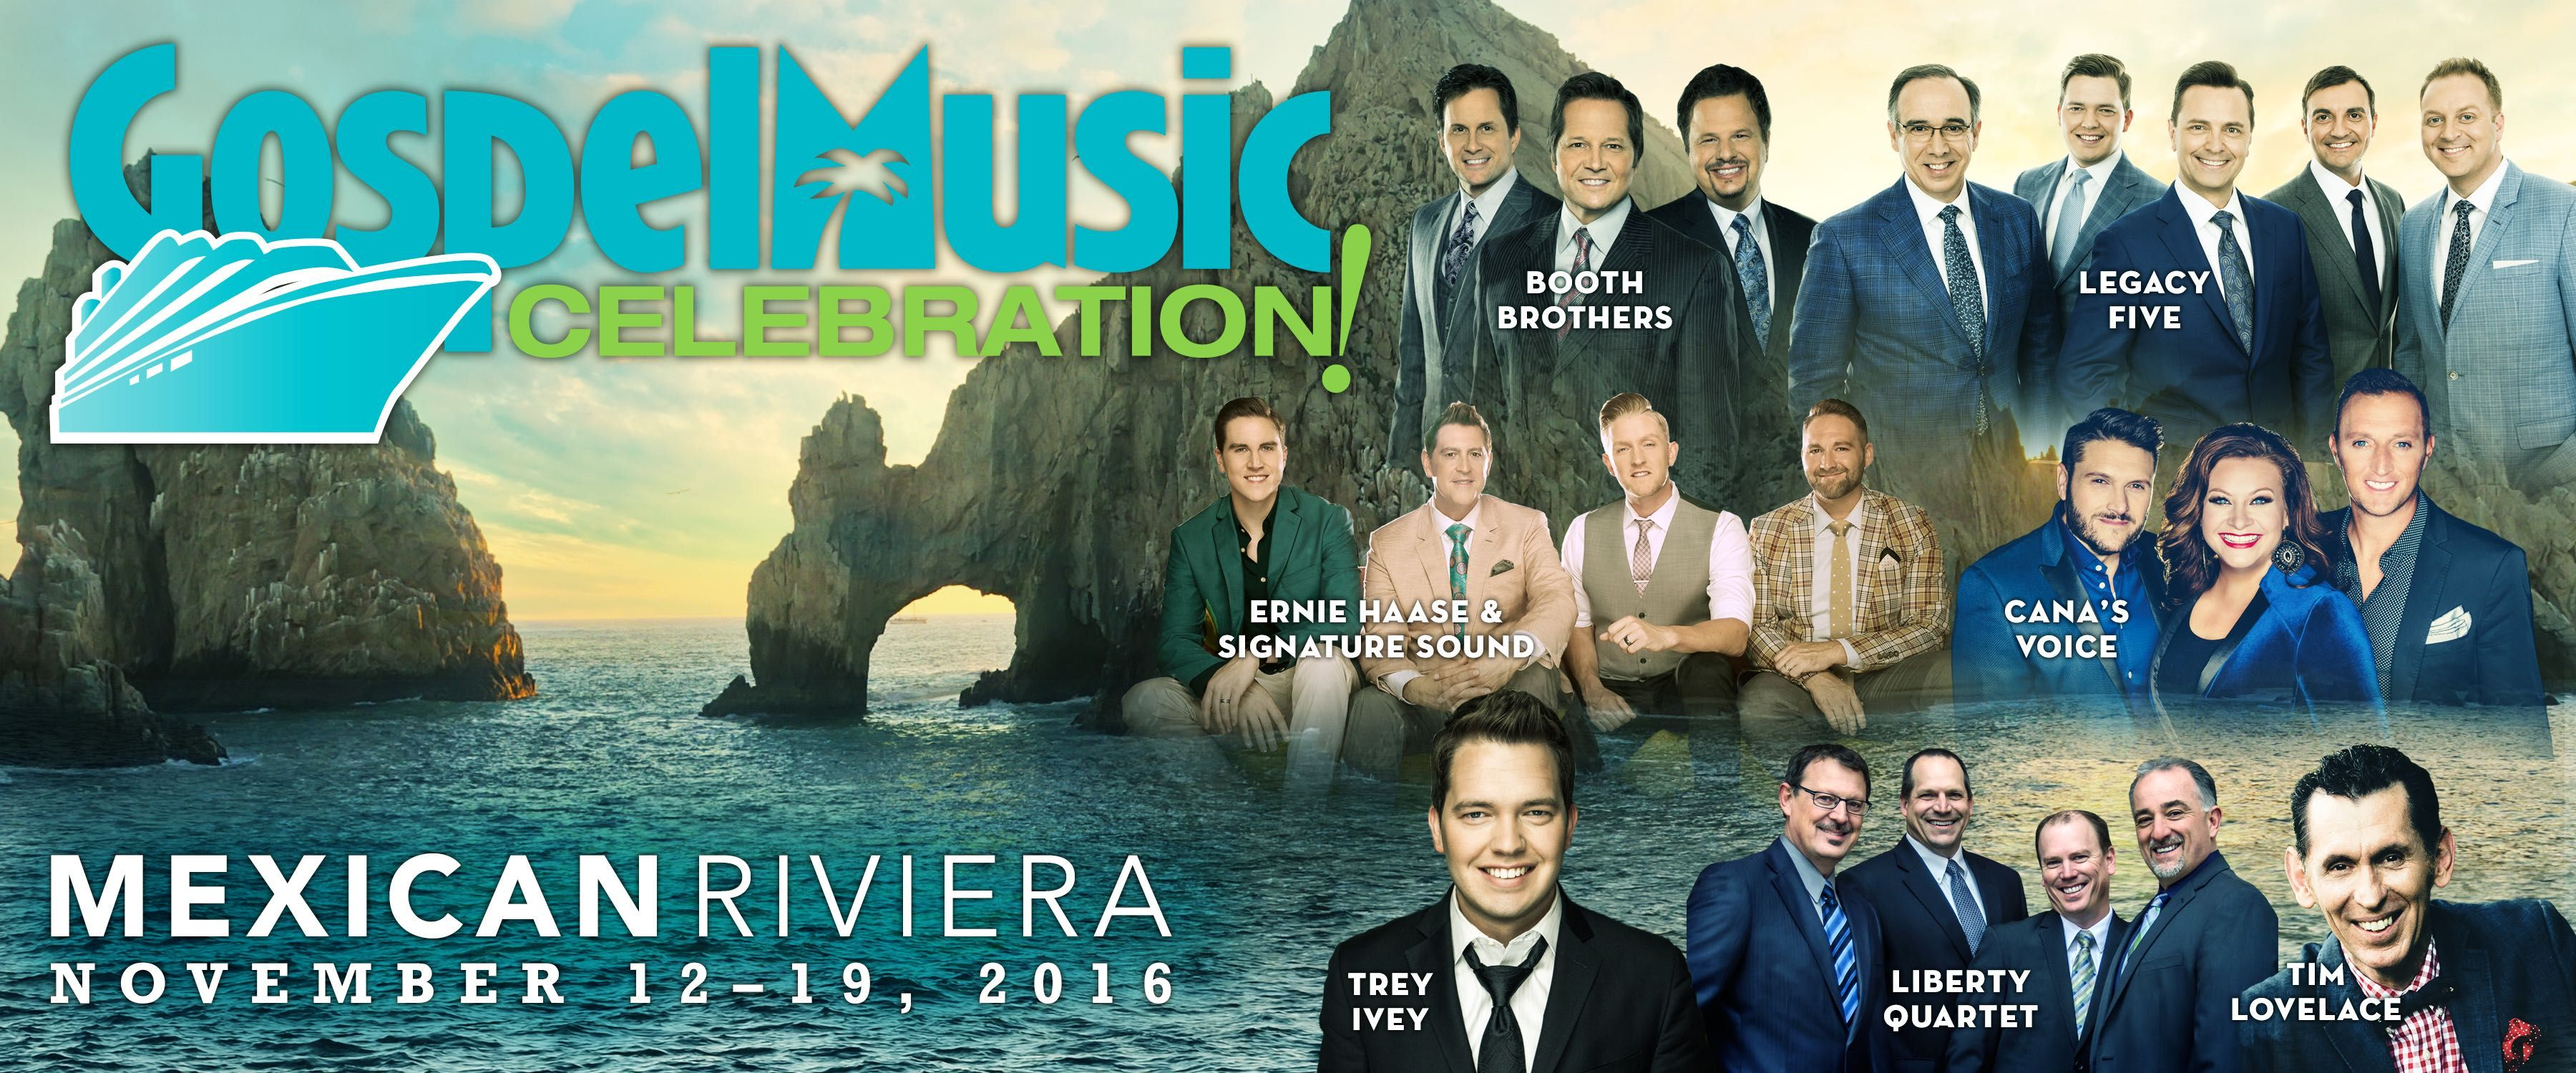 Pin by iTickets on Southern & Country Gospel | Gospel ...